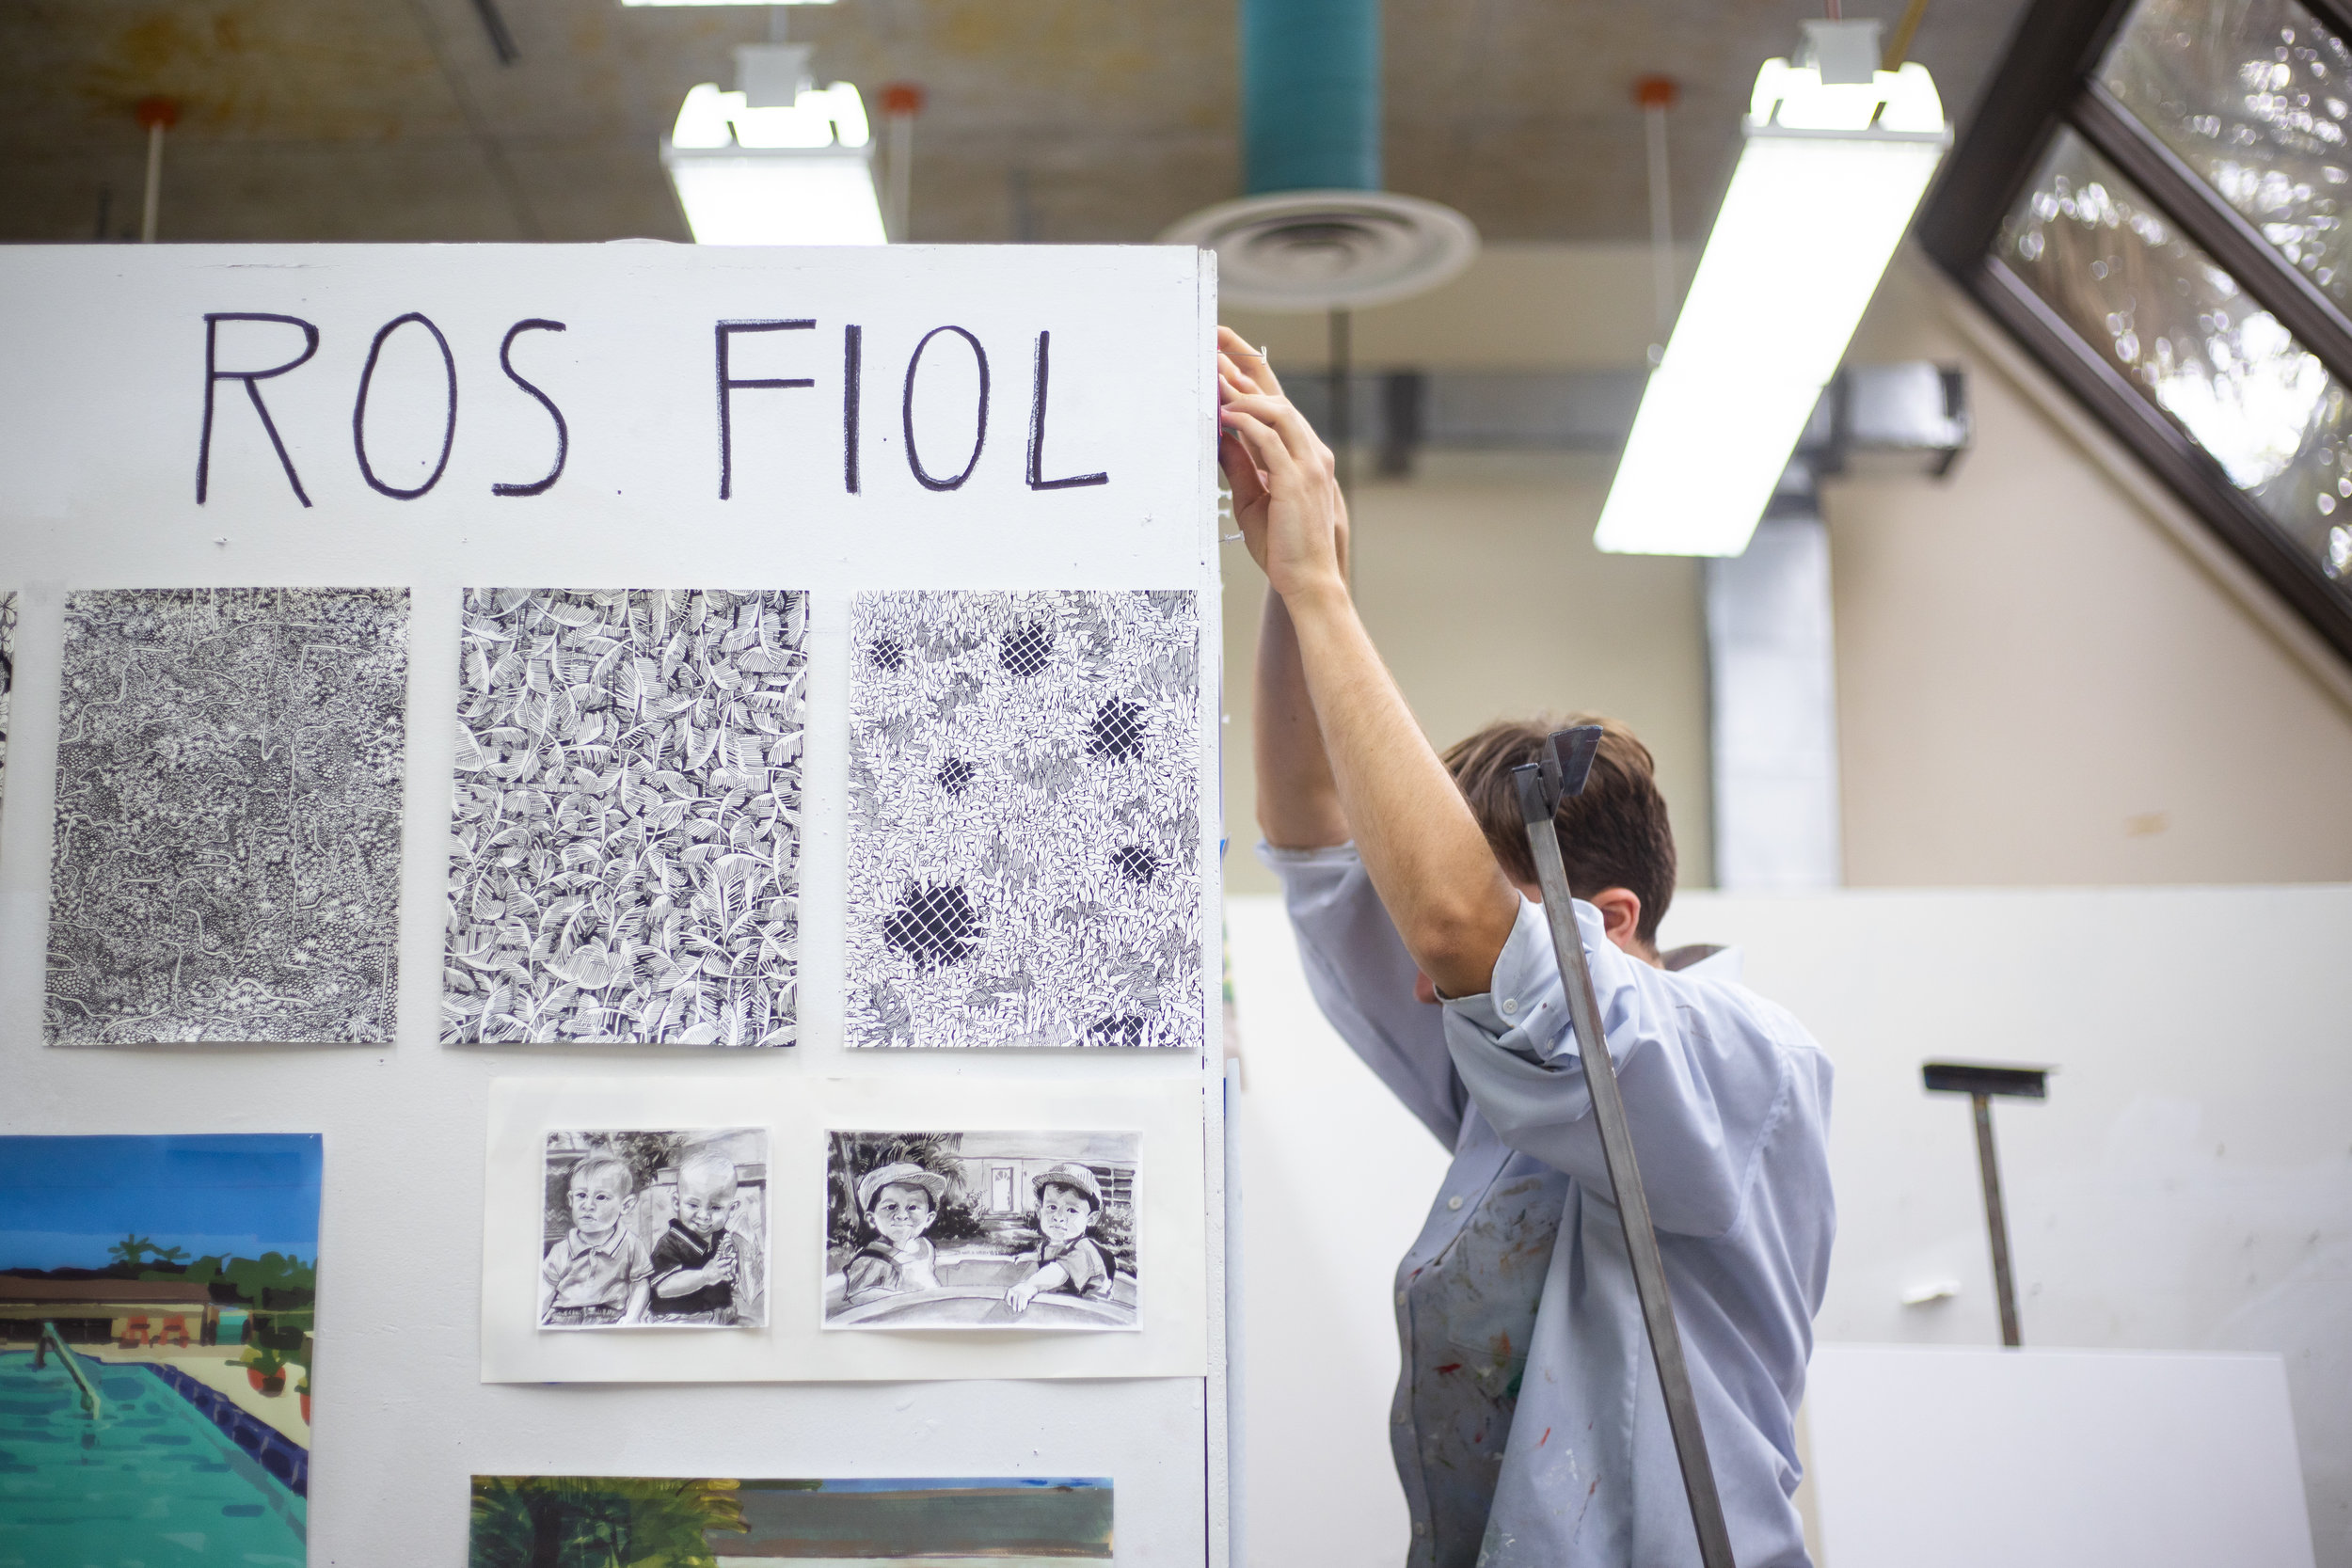 Ros Fiol pictured in his studio, located on UF's campus